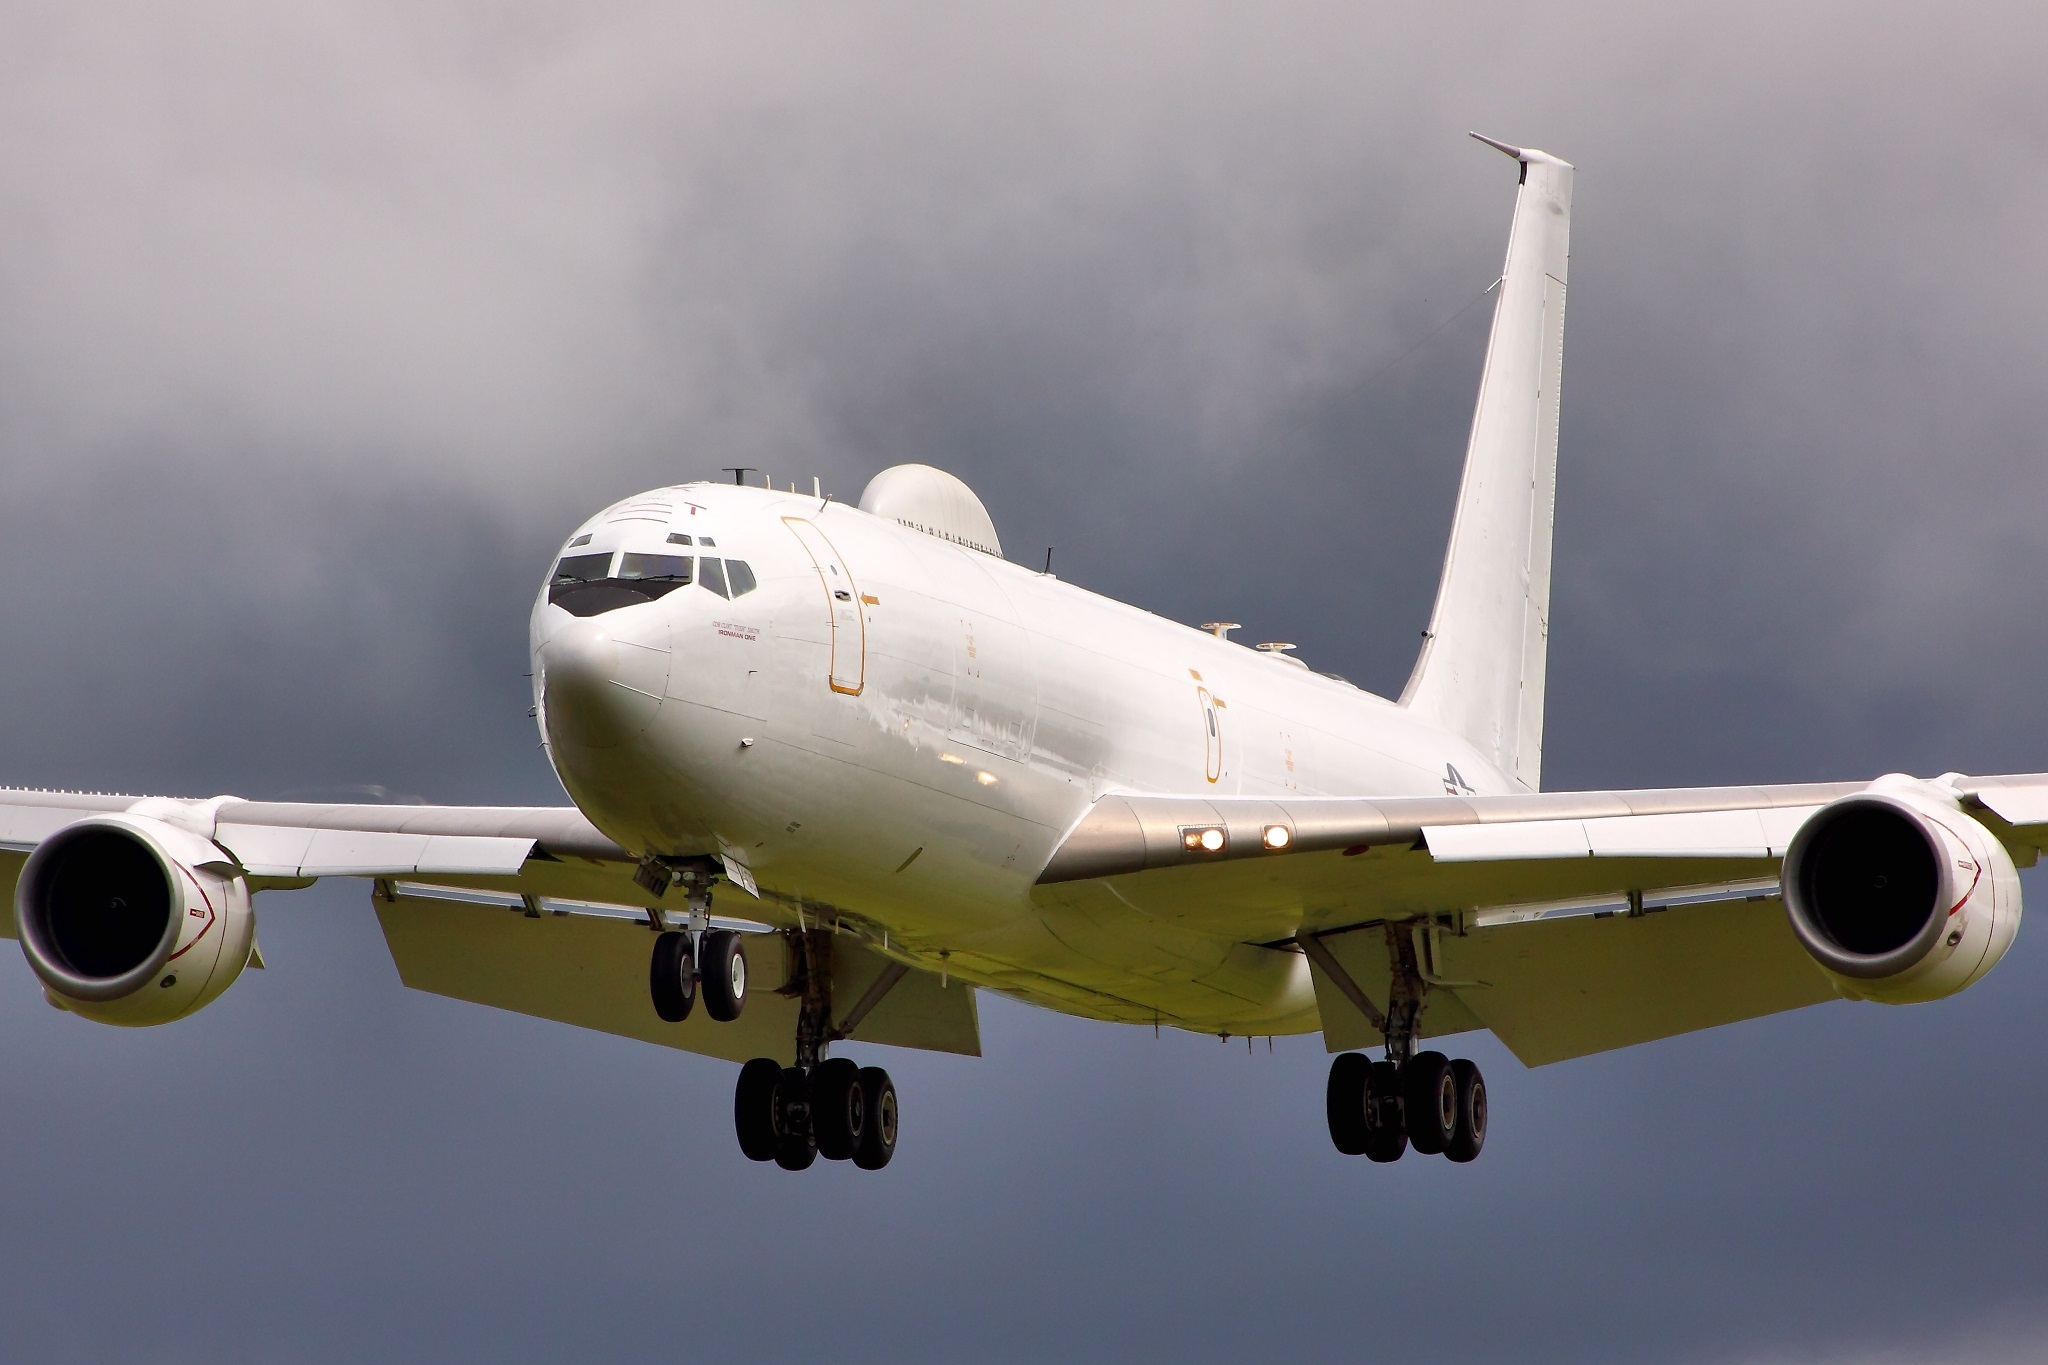 The E 6 America S Doomsday Plane That Could Nuke Russia China Or